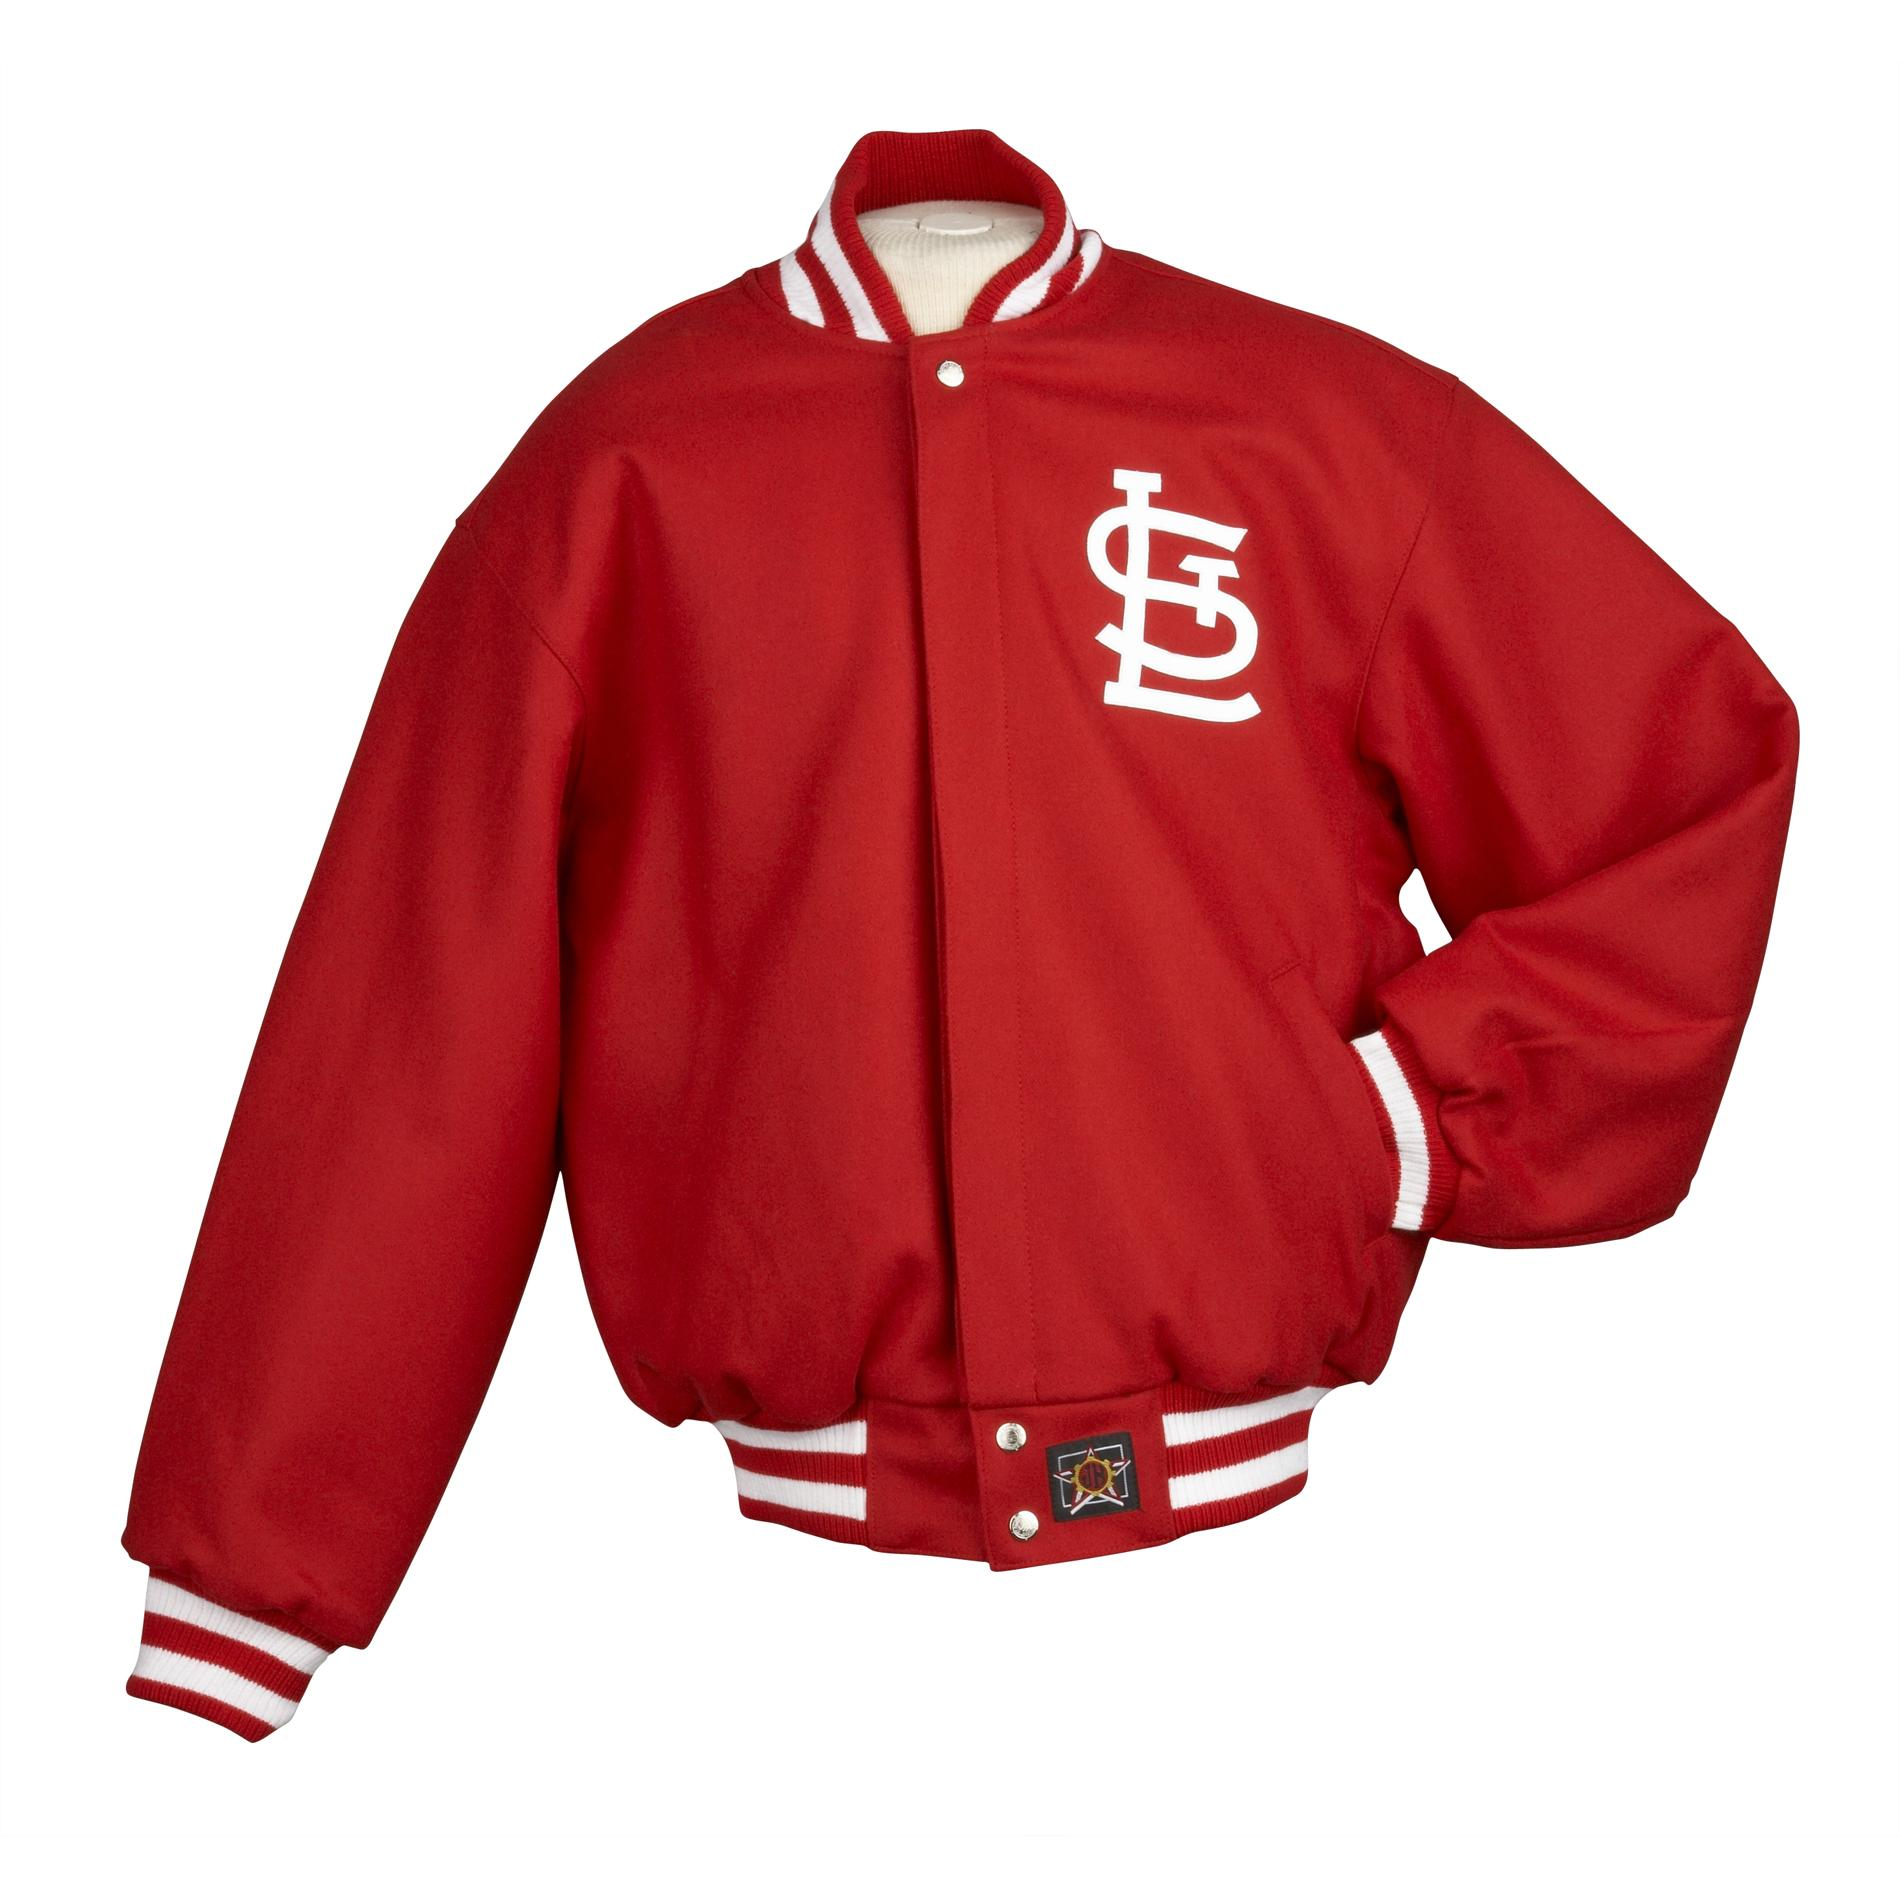 JH Designs Men's St. Louis Cardinals Domestic Wool Jacket - Thumbnail 2